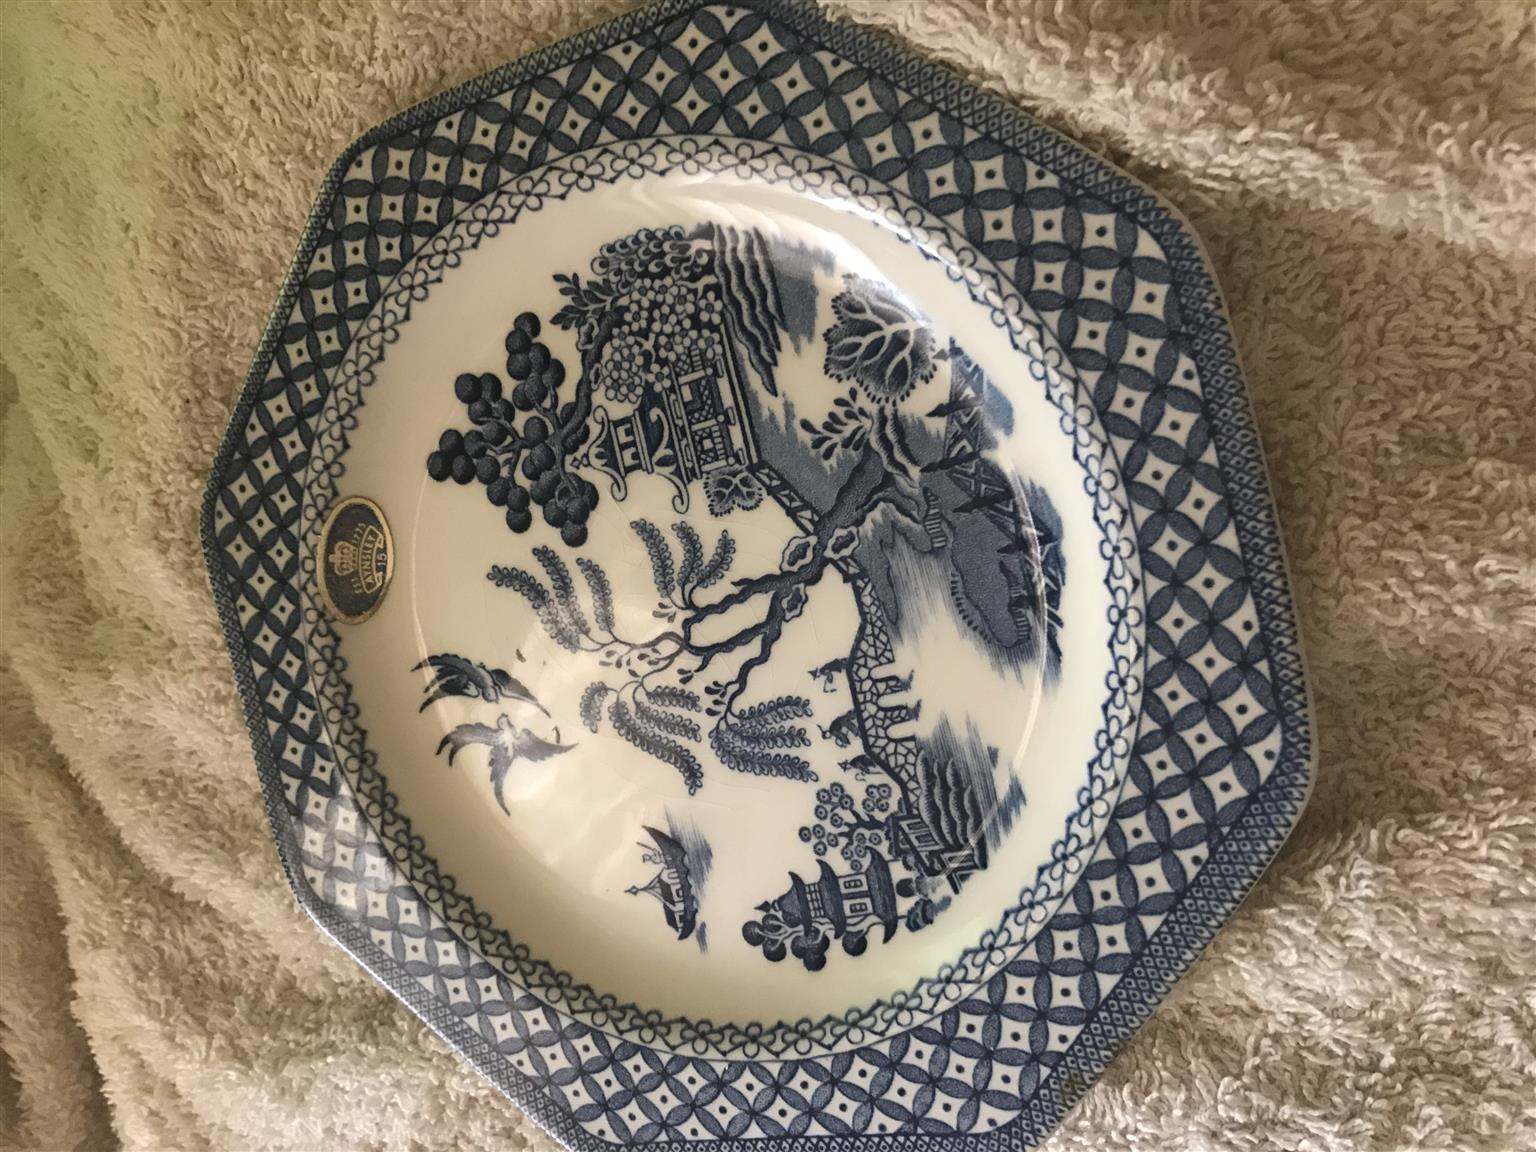 Decorative cup and plates